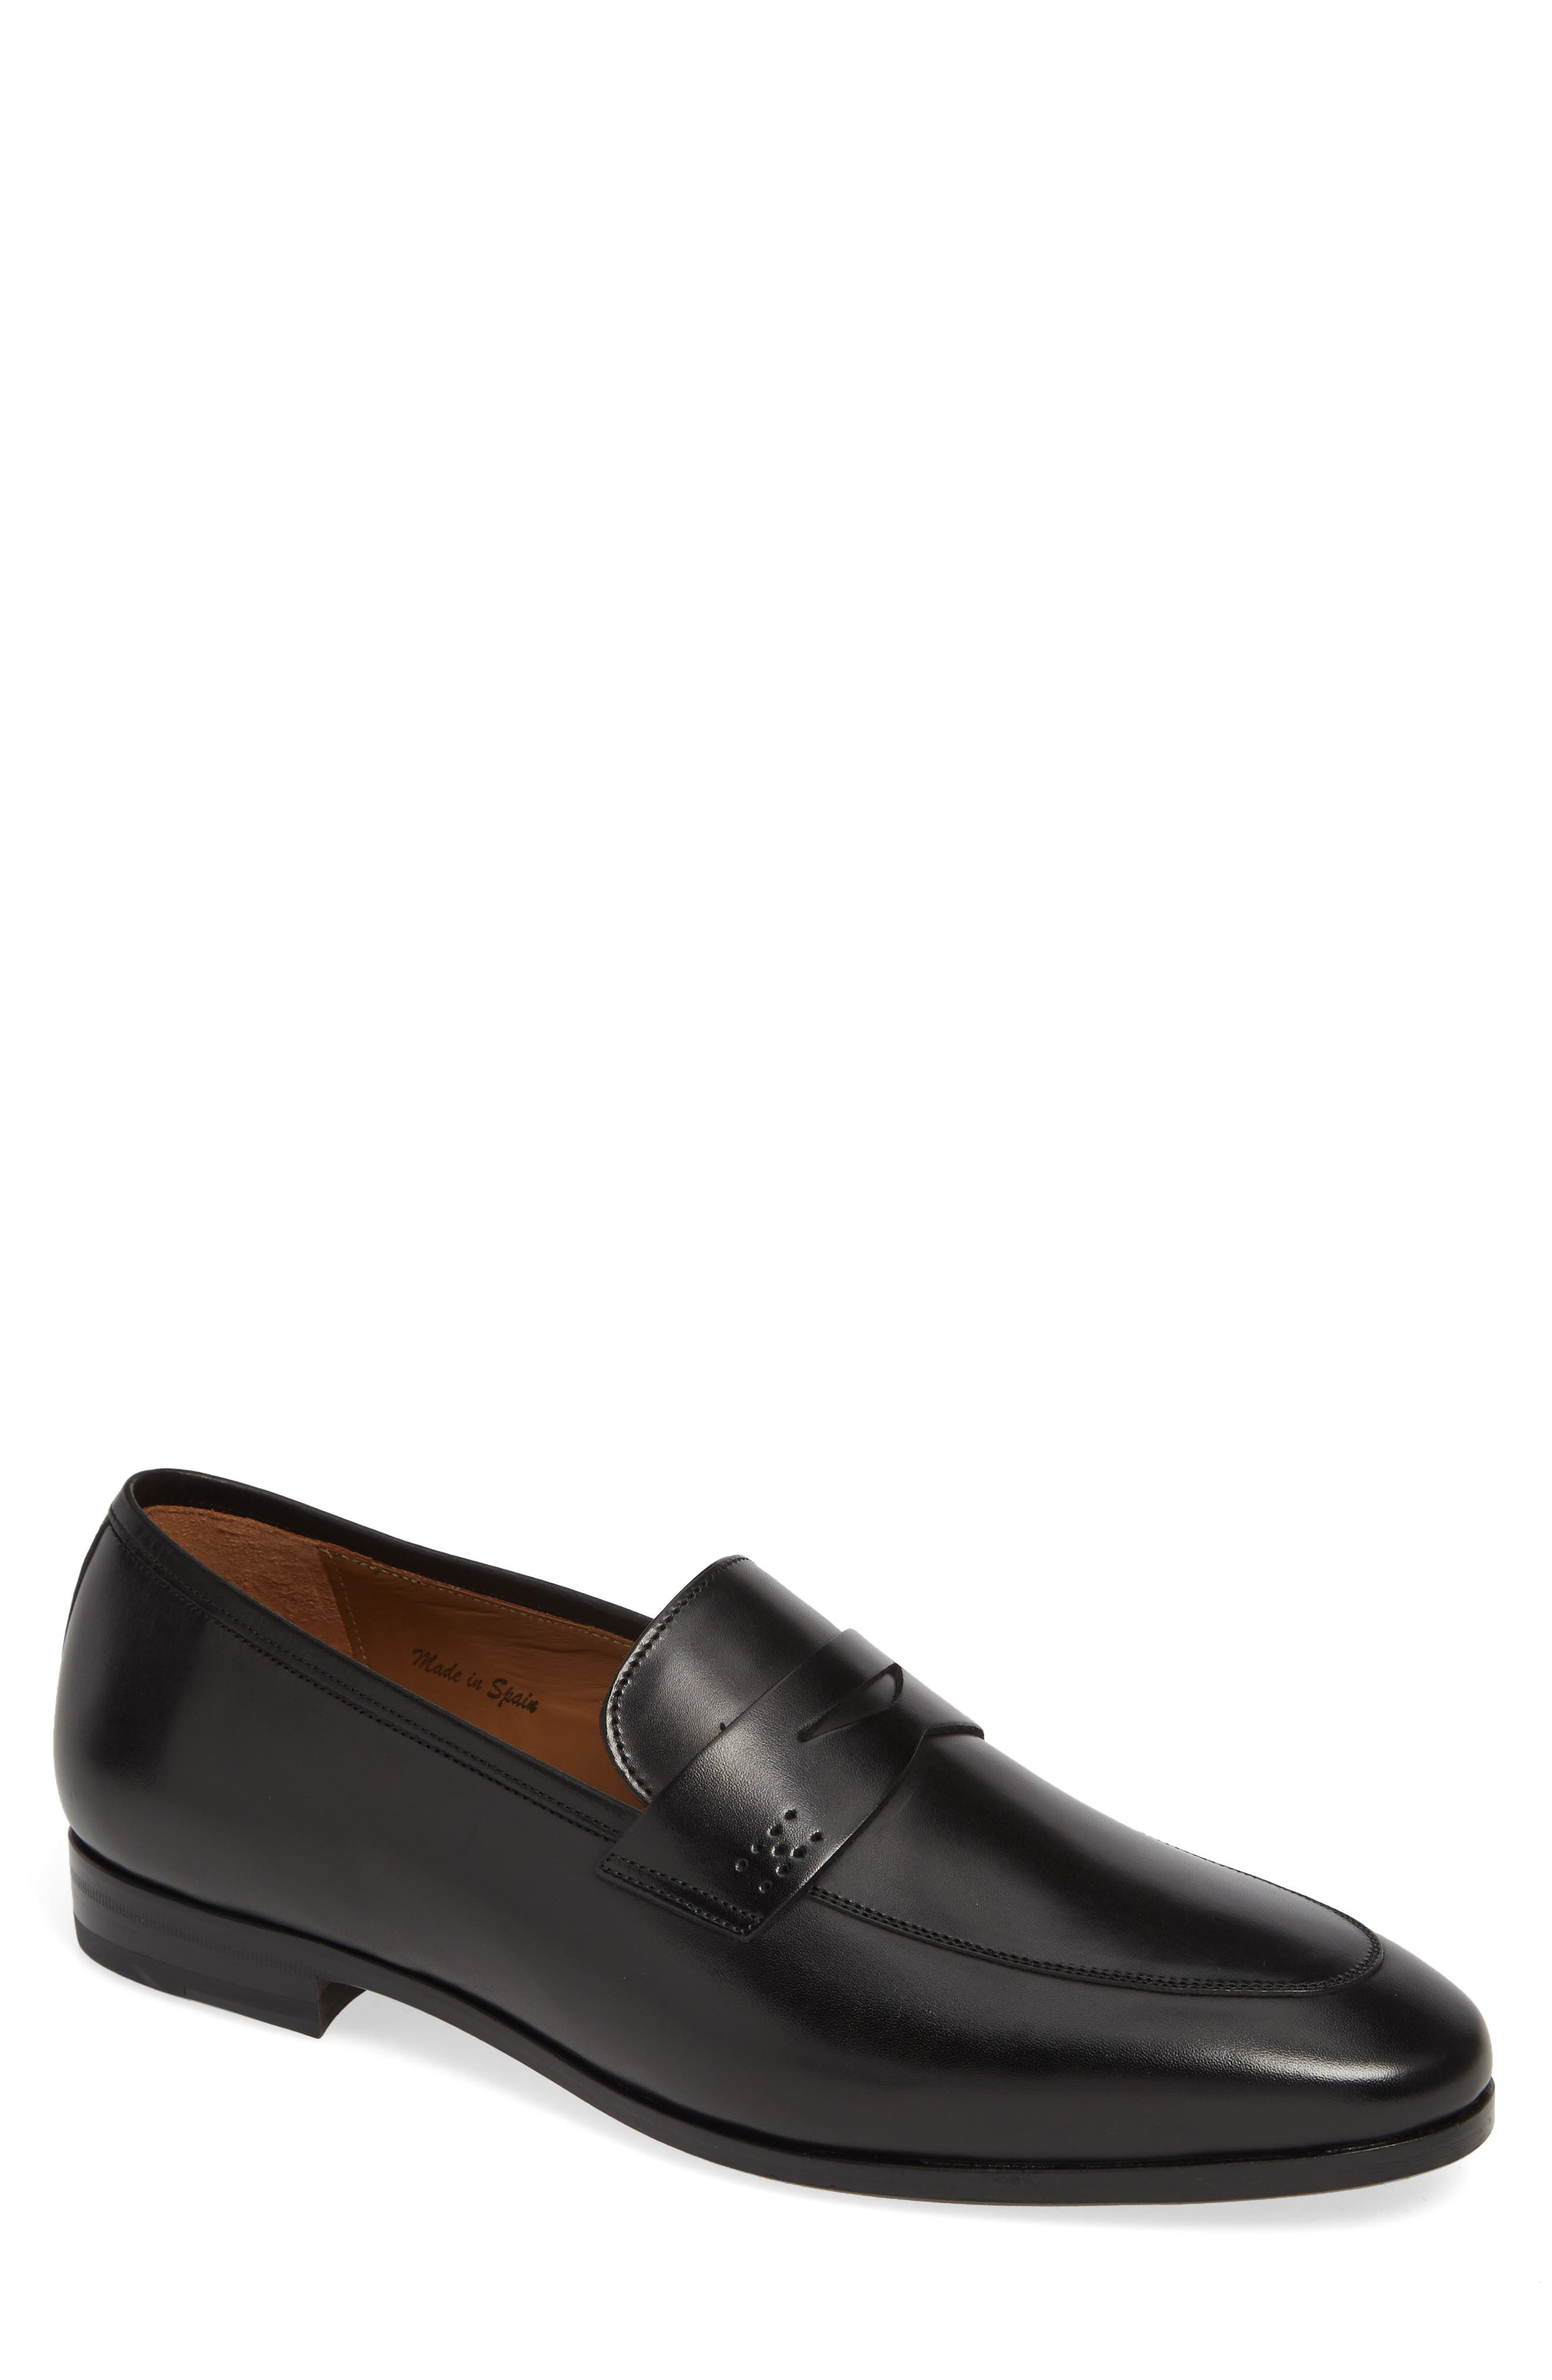 Mezlan Fabrizi Penny Loafer, Black